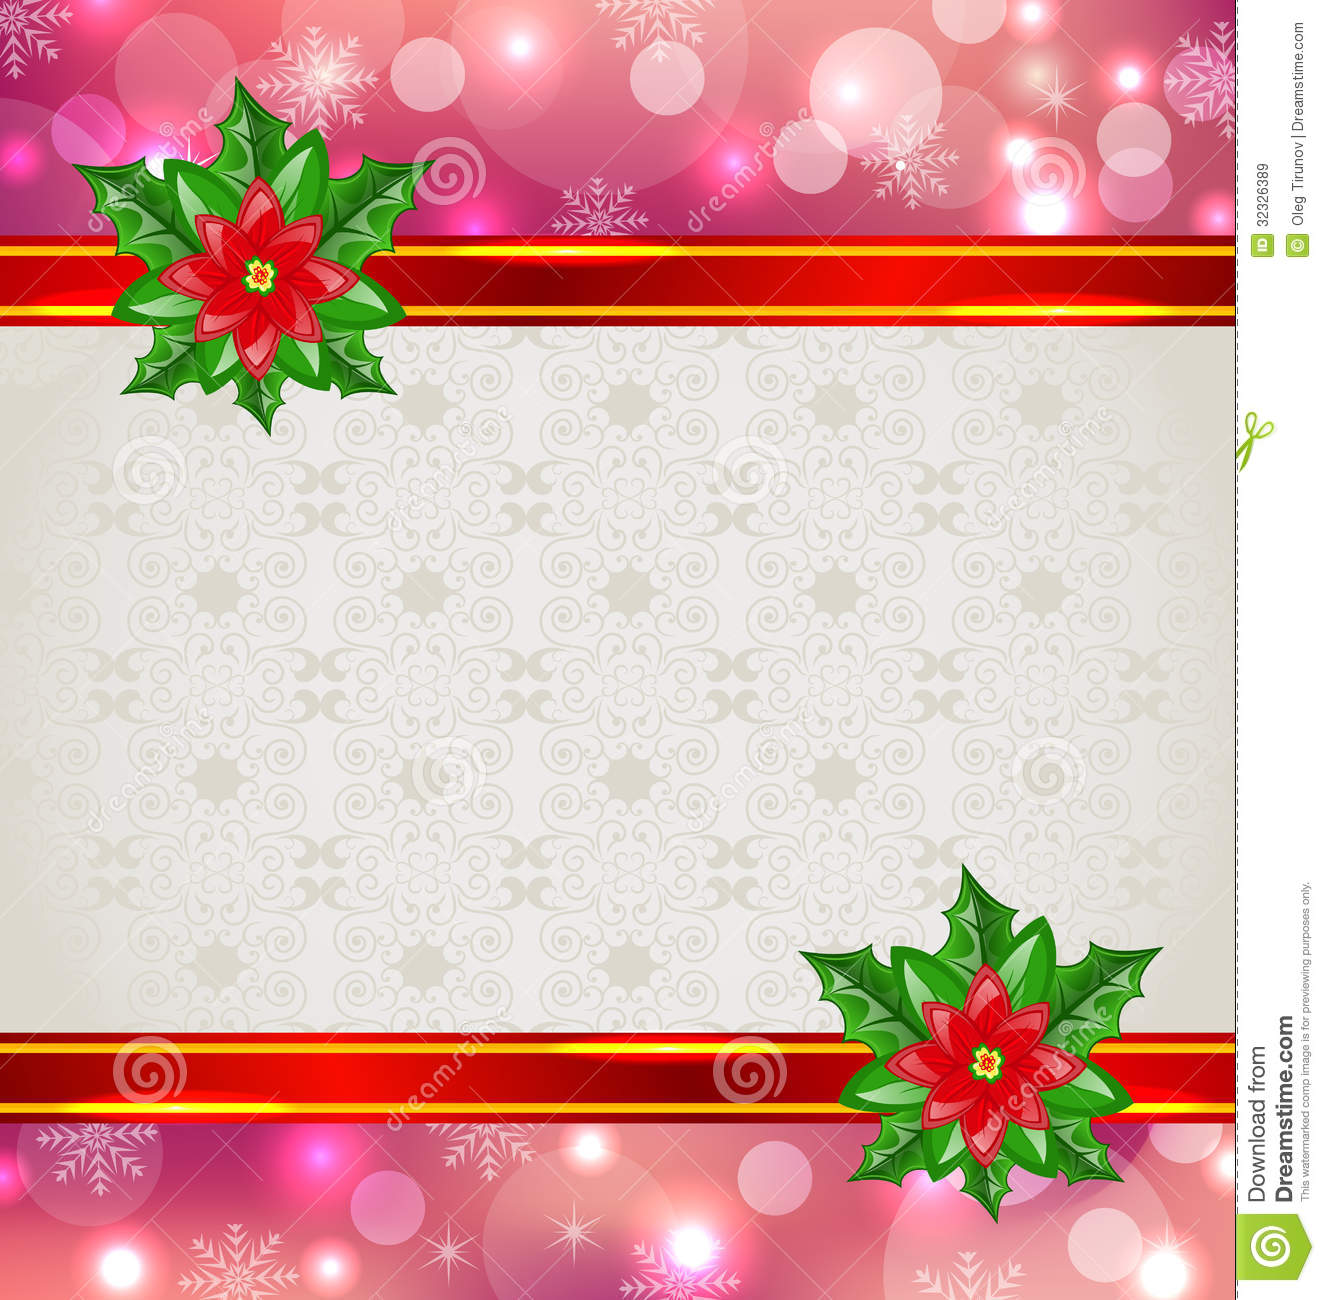 Christmas flowers pictures free svg library download Christmas Elegant Card With Flower Poinsettia Royalty Free Stock ... svg library download